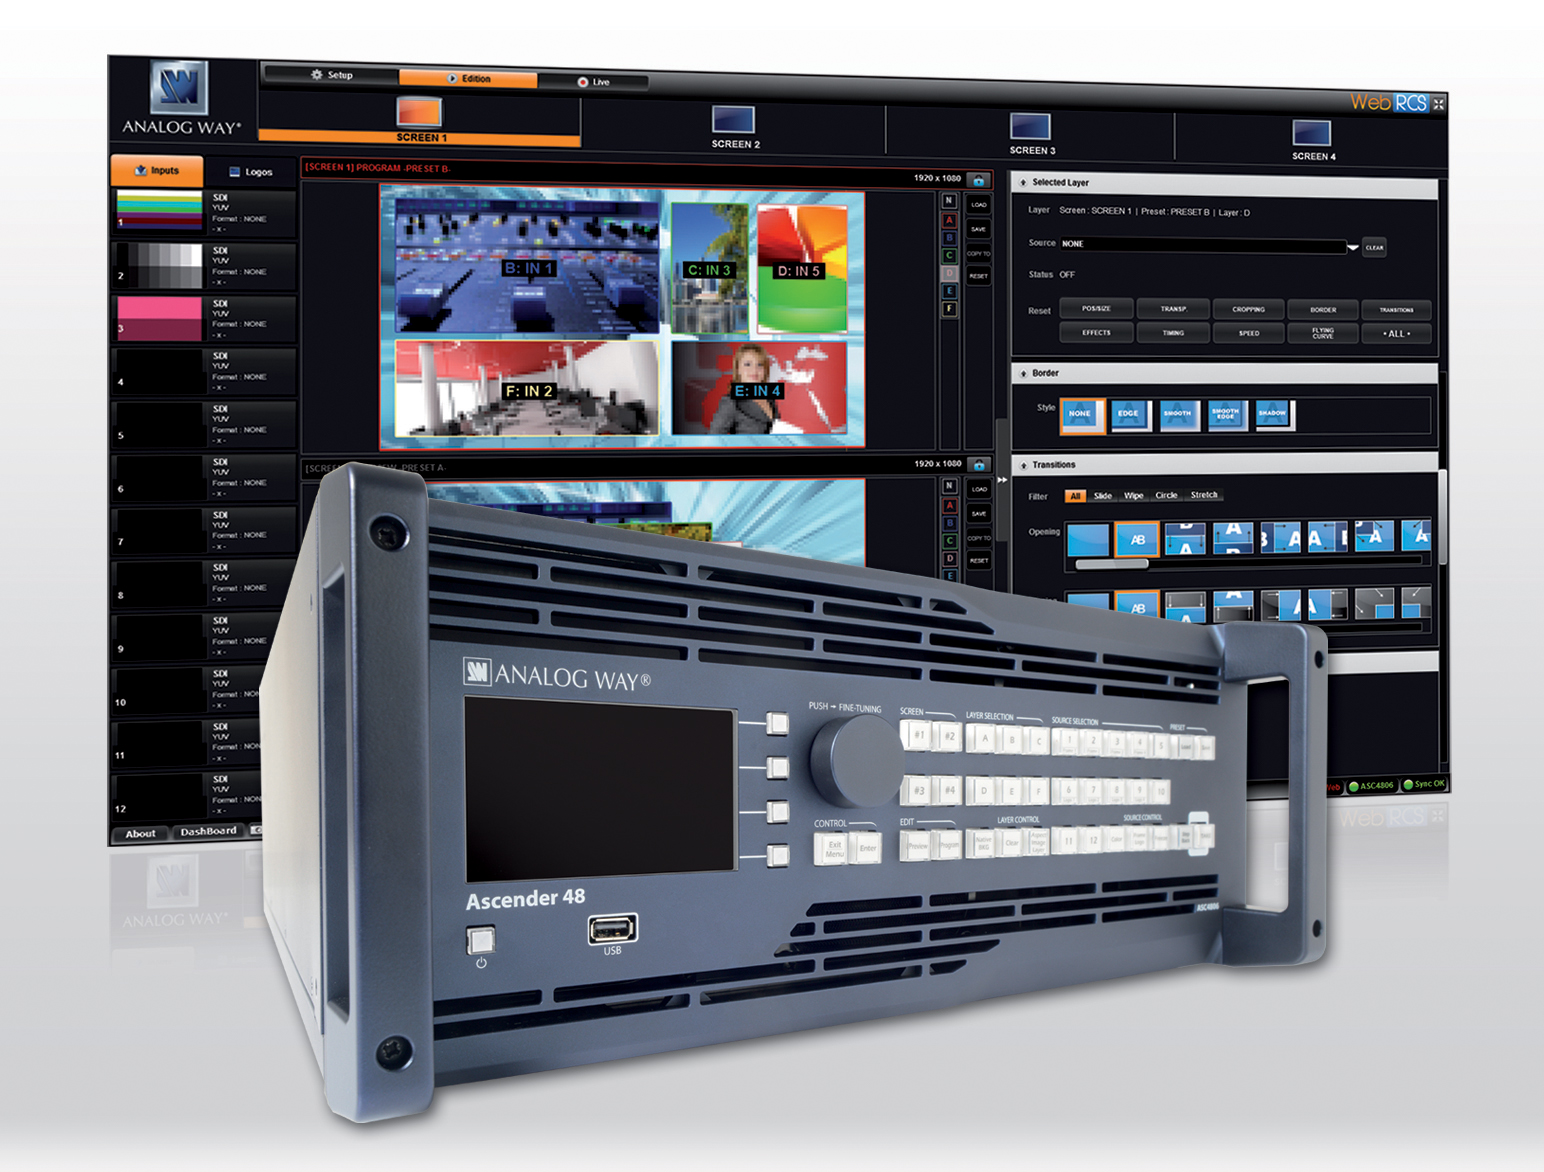 Analog Way exhibits at InfoComm Middle East Africa 2013 Booth TA-115